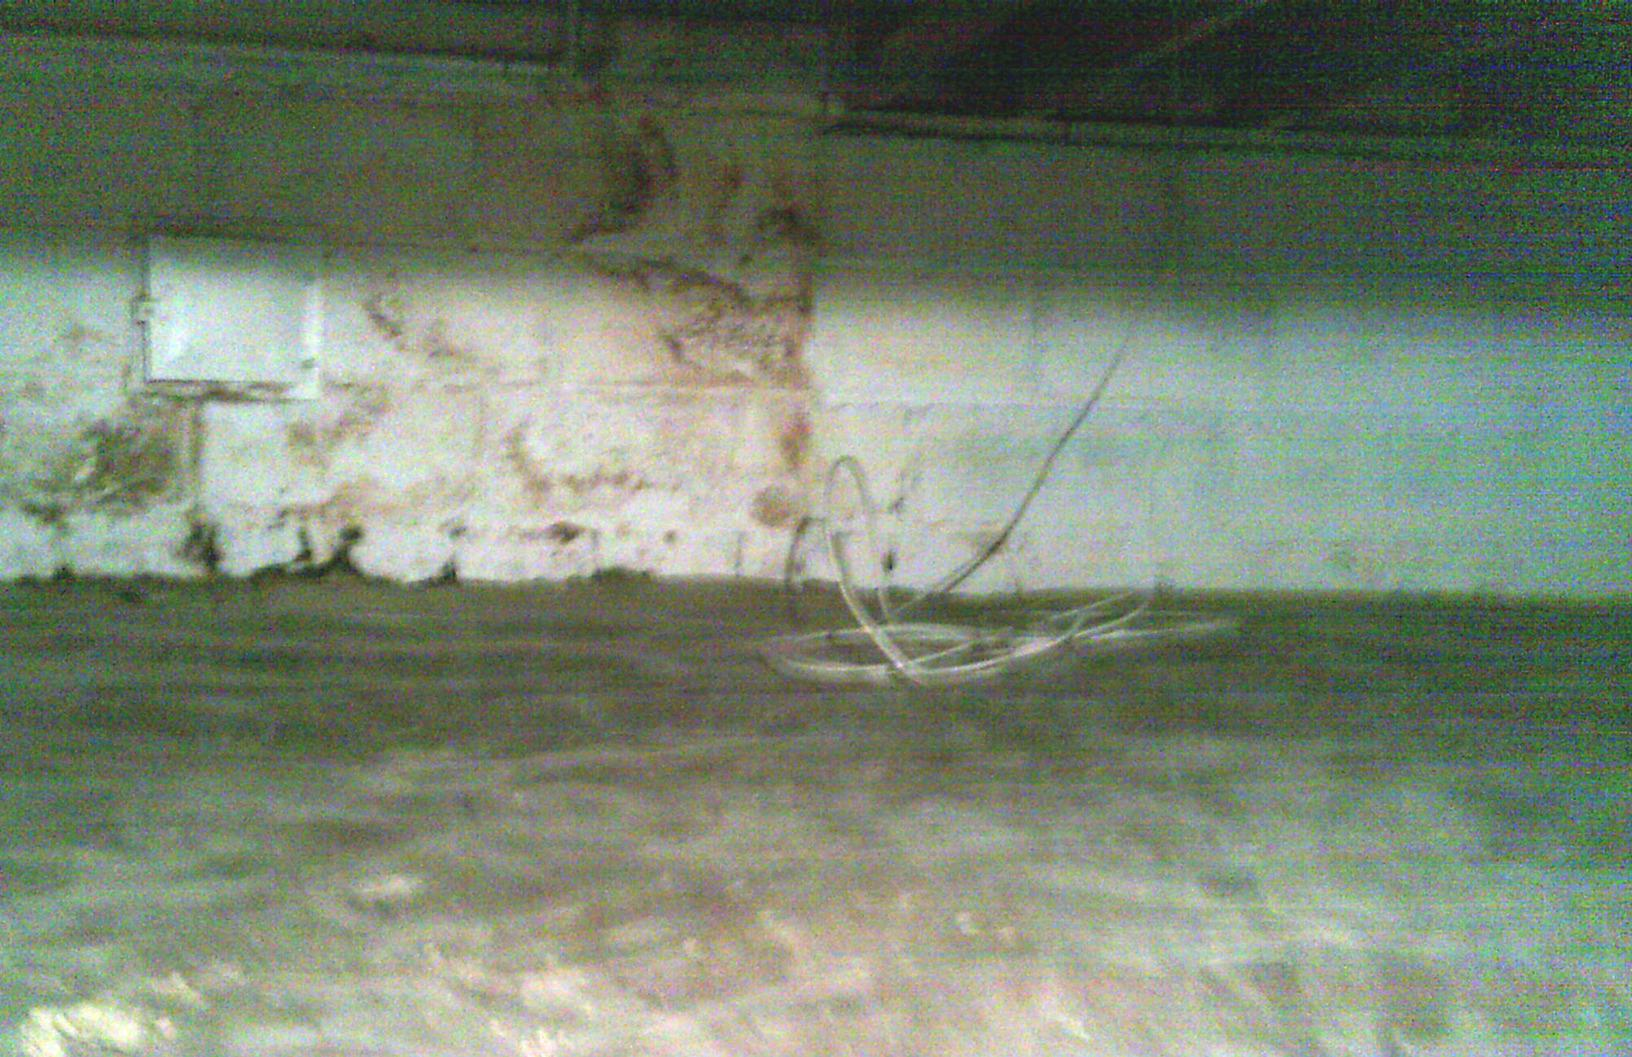 Water damage is visible from repeated water entering into this crawl space along the walls.